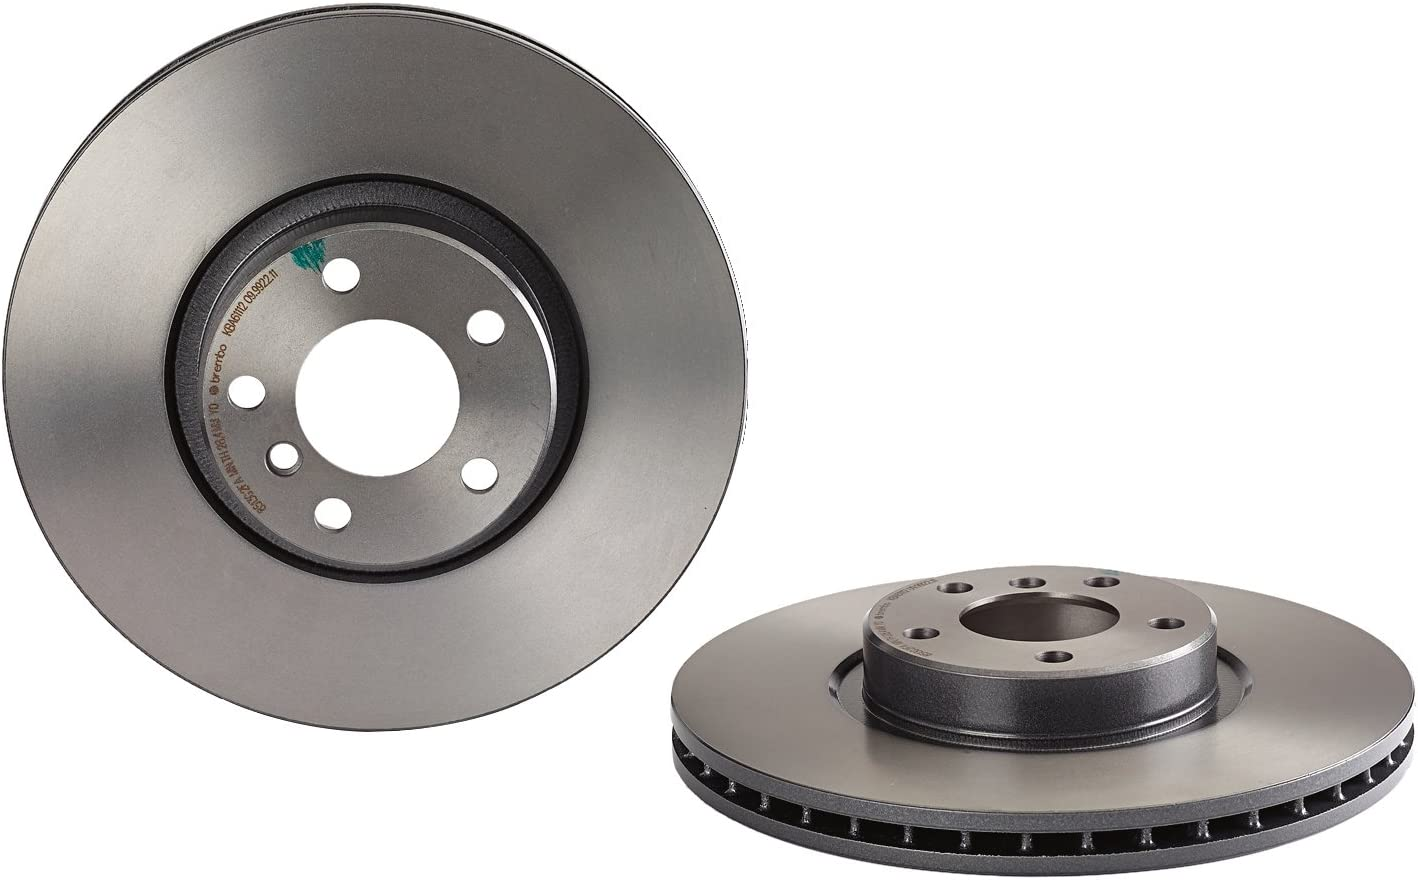 Brembo 09.9922.11 UV Coated Rotor Disc Brake Front Challenge the Topics on TV lowest price of Japan